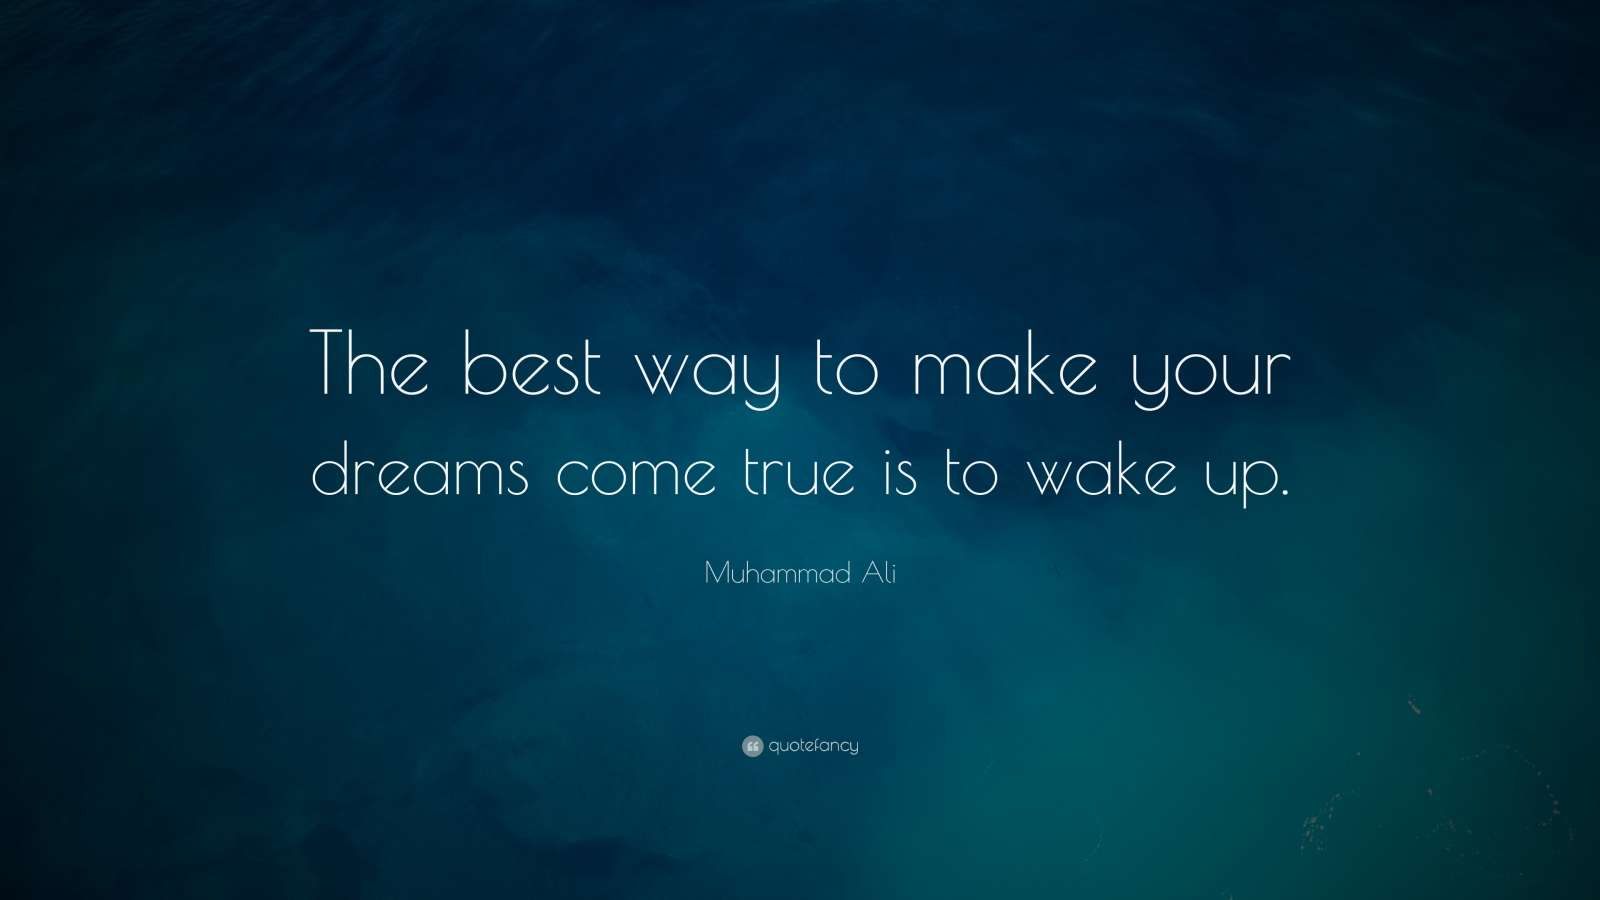 Best Way Make Your Dreams Come True Wake